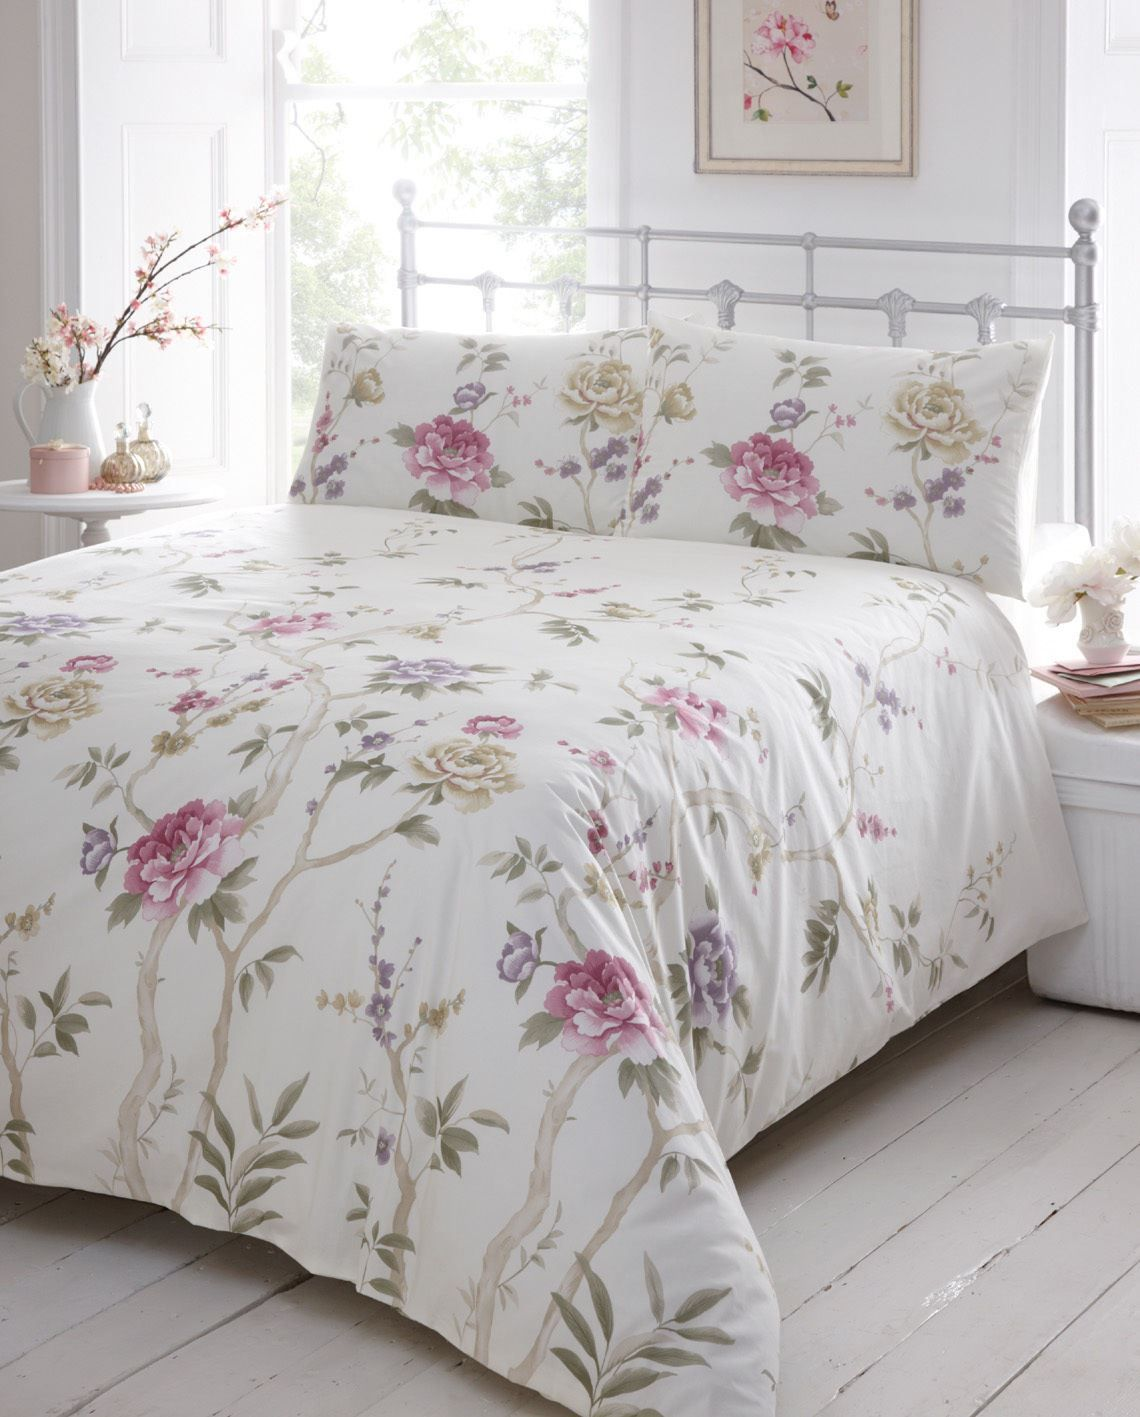 Dreams N Ds Mimi Heather Single Quilt Set From Our Duvet Covers Bedding Sets Range At Tesco Direct We Stock A Great Of Products